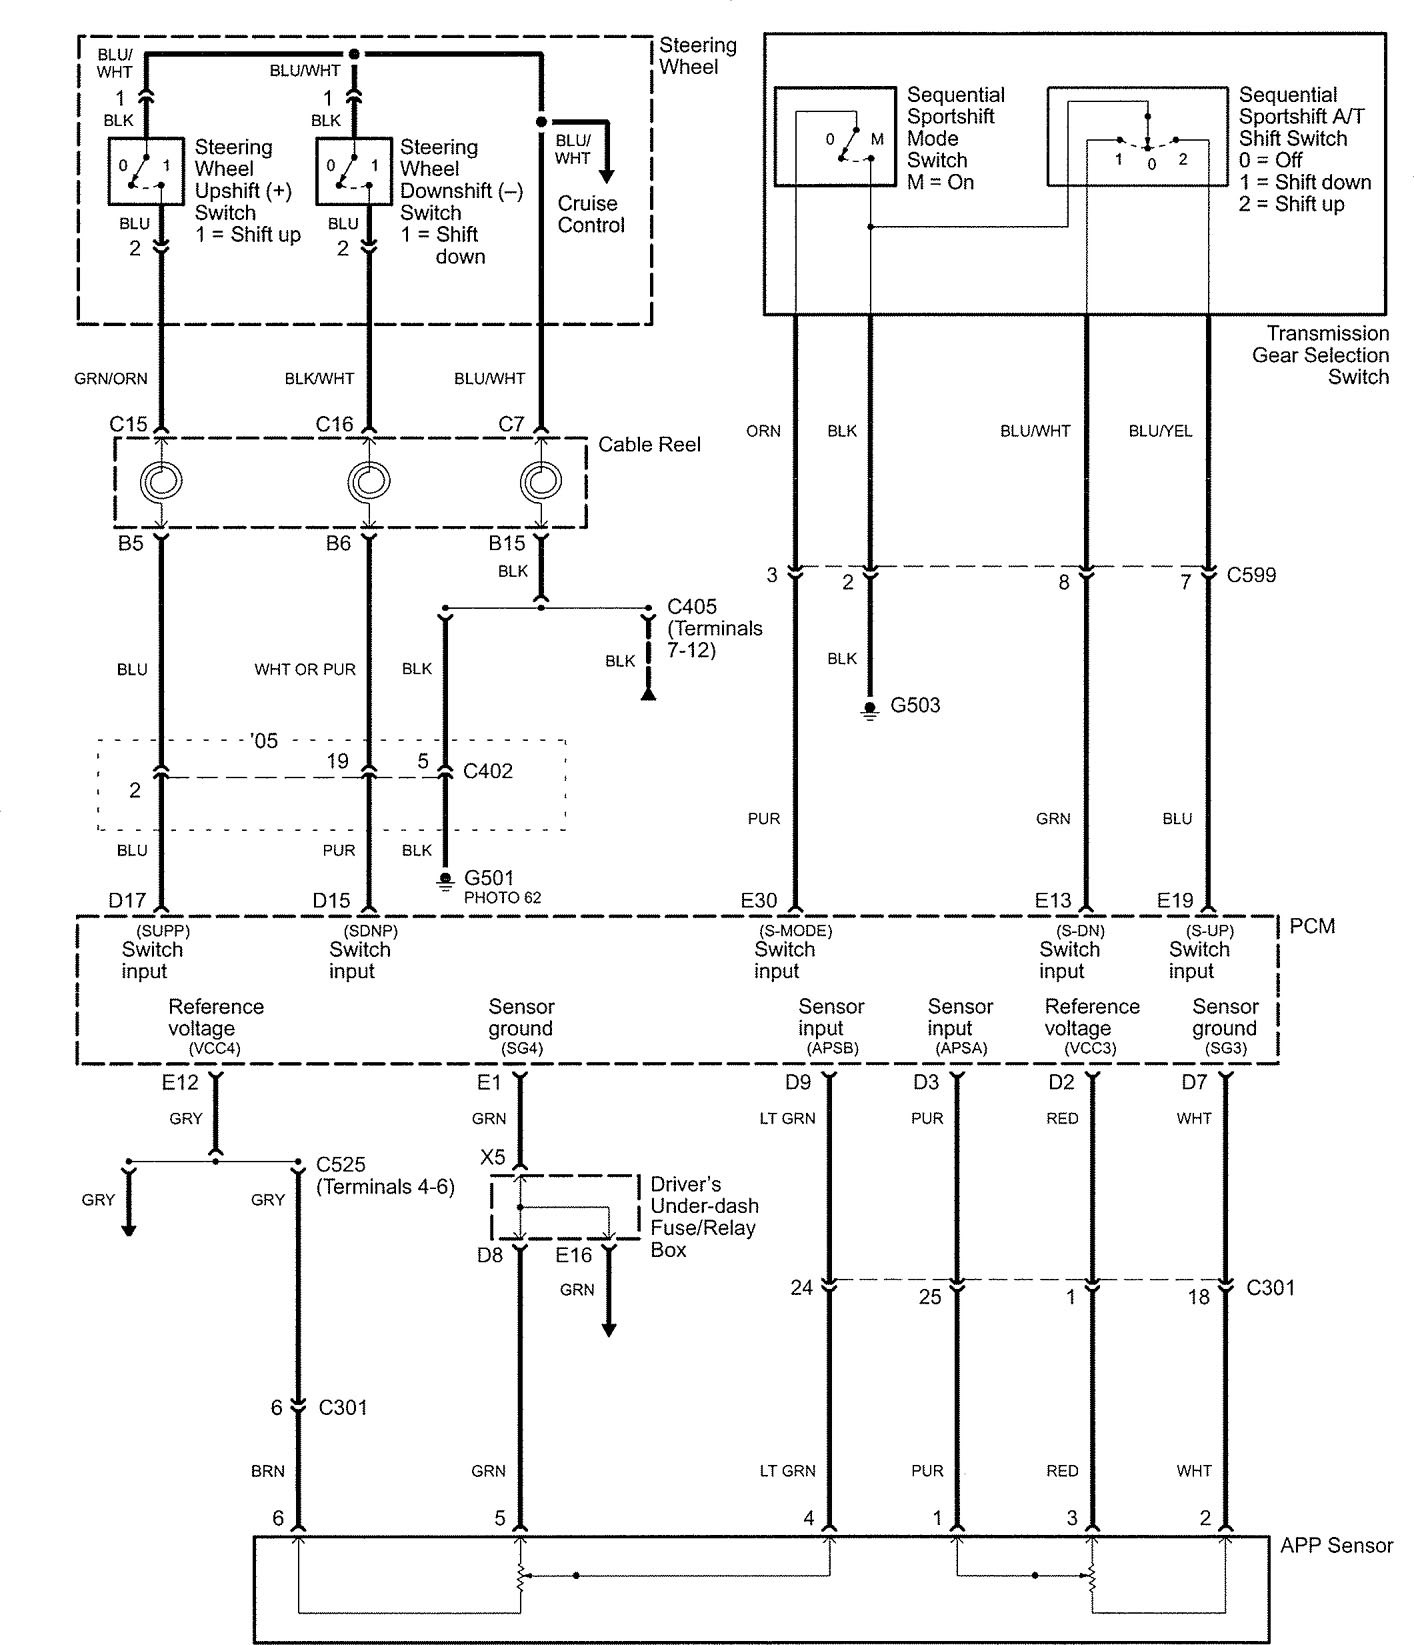 2004 mazda 6 bose subwoofer wiring diagram gibson les paul standard 2016 cadillac escalade free download